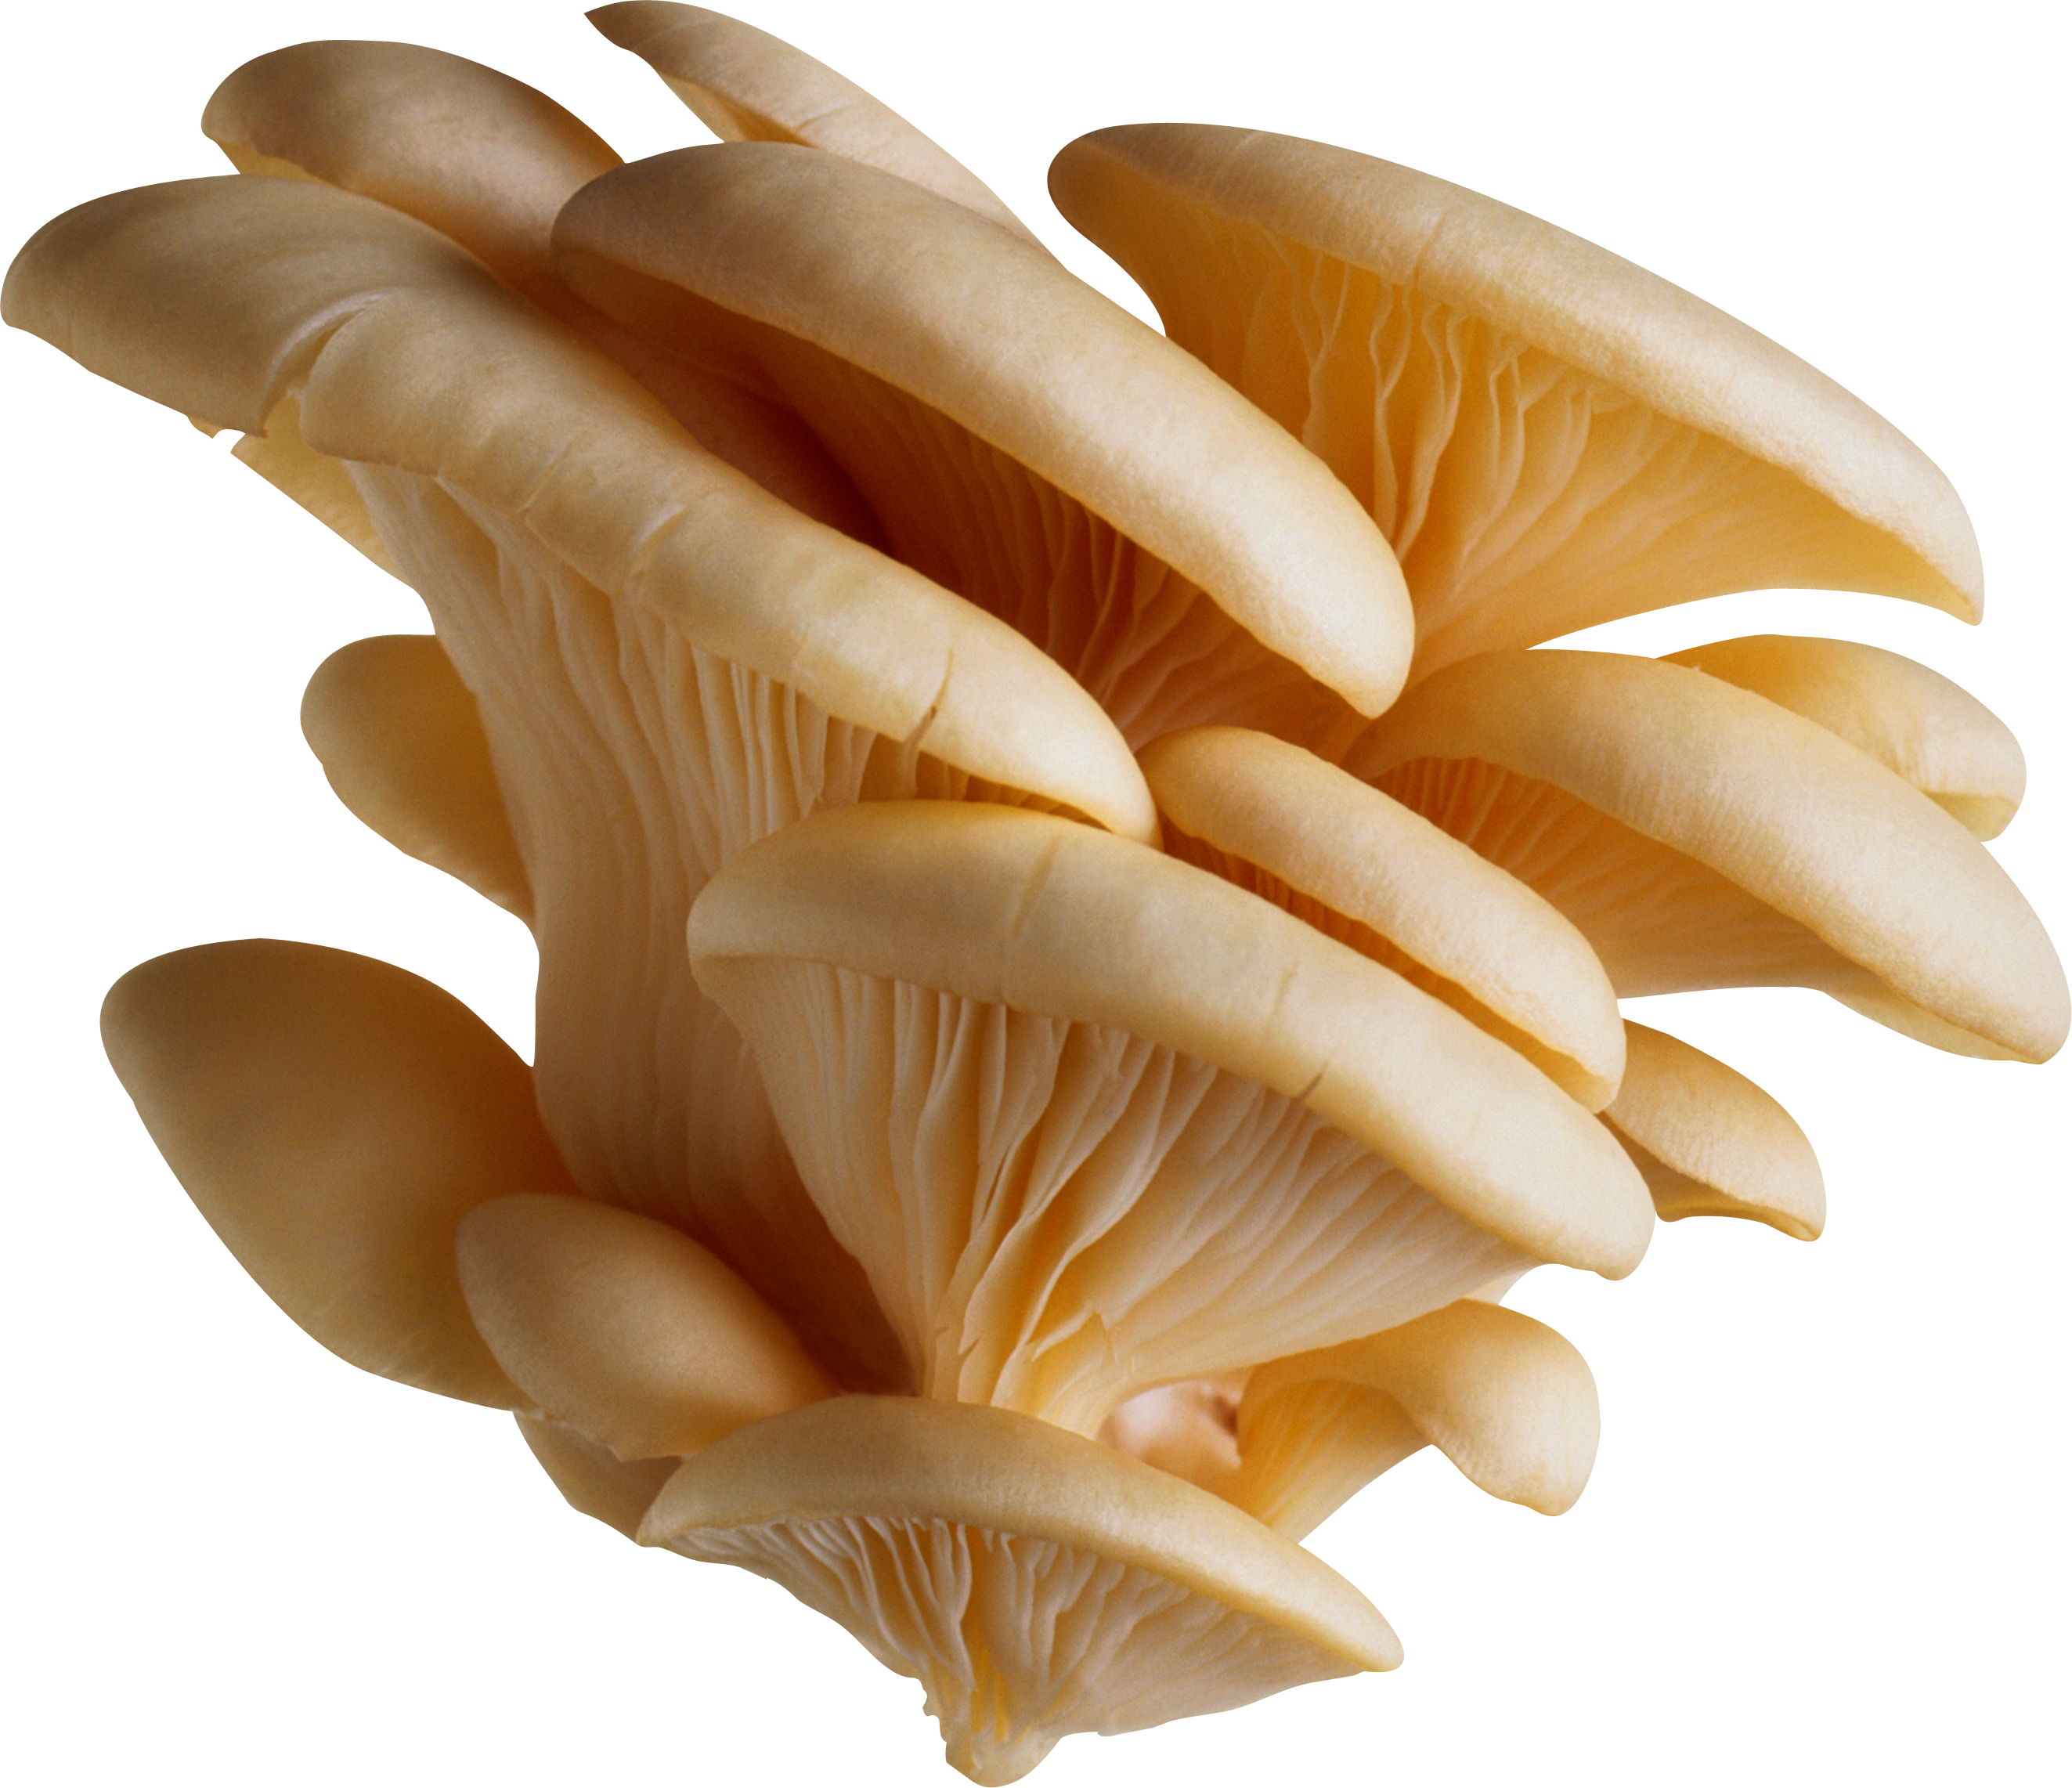 Edible Mushroom Ready for Cooking 1310.34 Kb